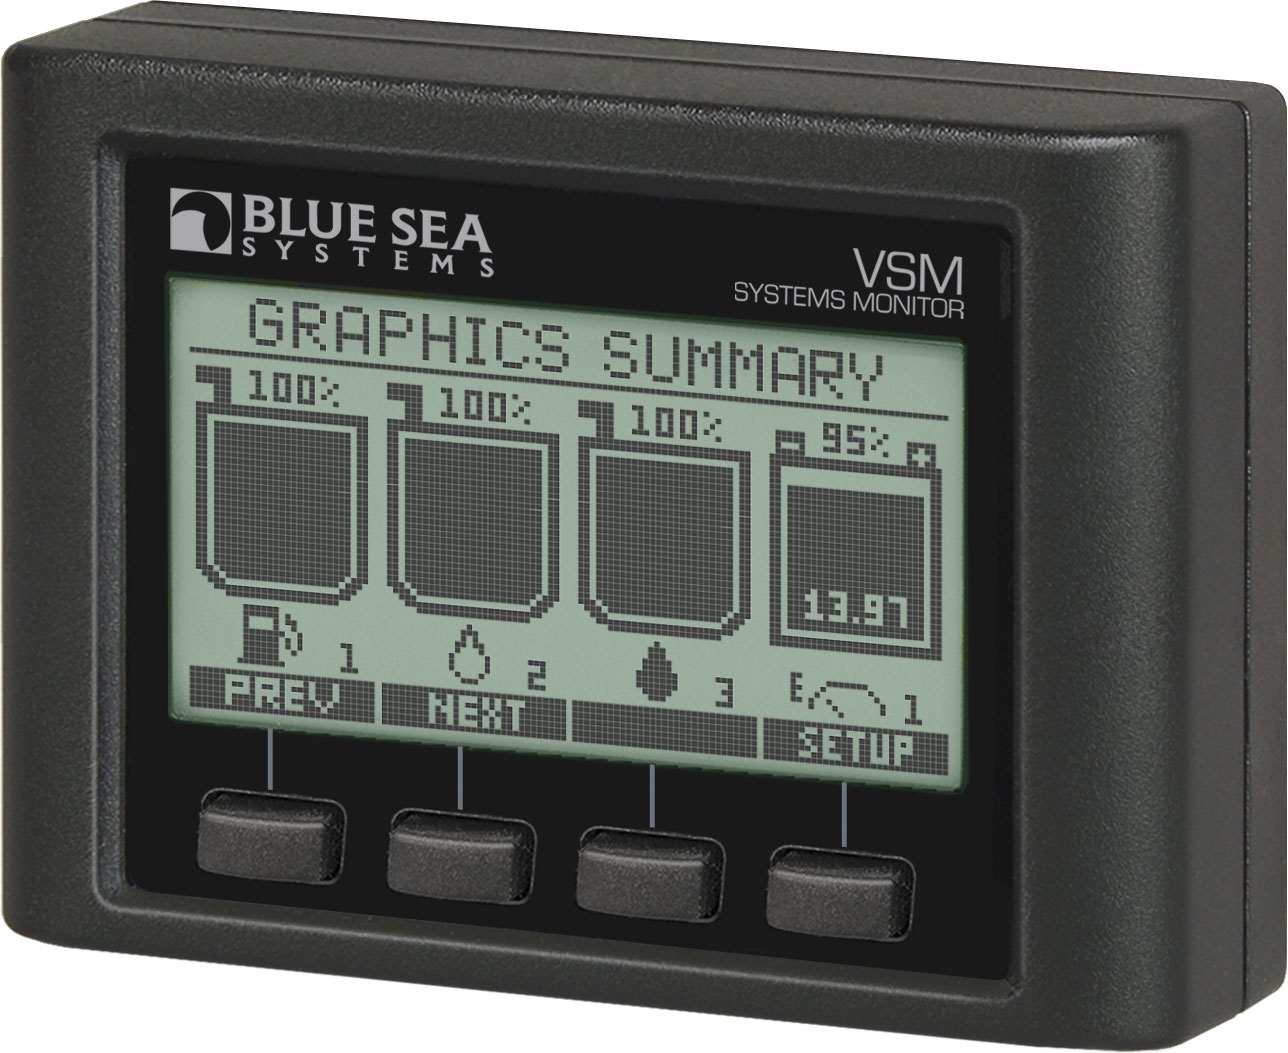 marine battery monitoring system cat6 ethernet wiring diagram vessel systems monitor vsm 422 blue sea